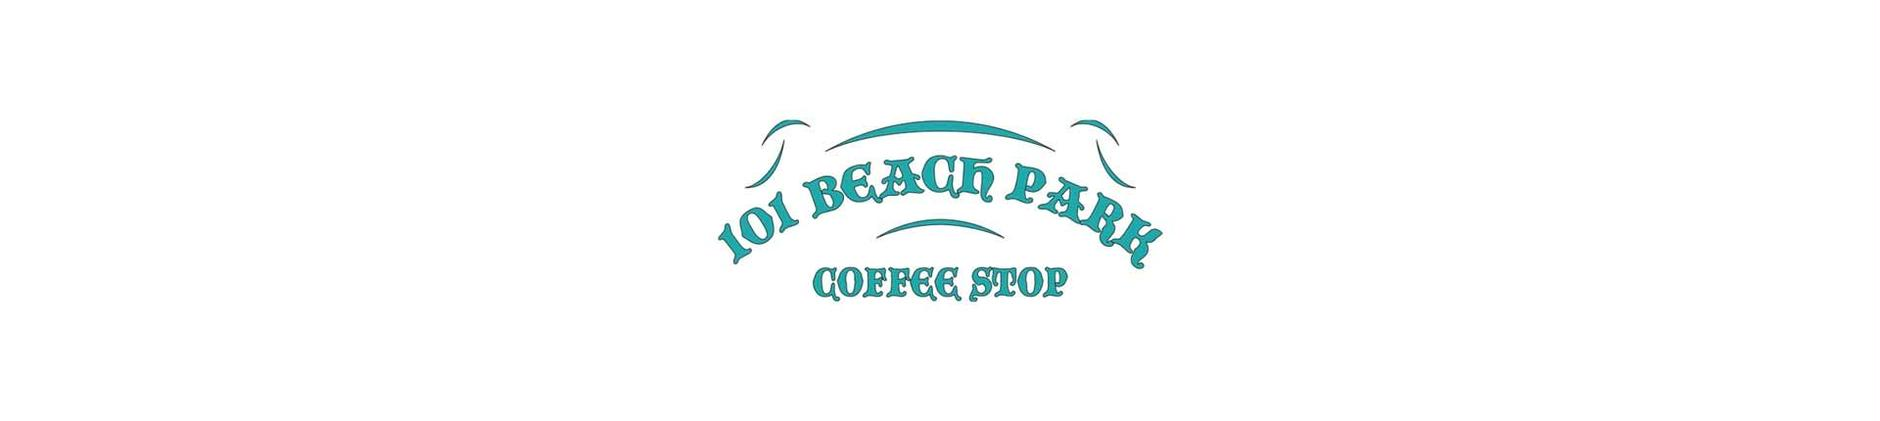 101 BEACH PARK COFFEE STOP